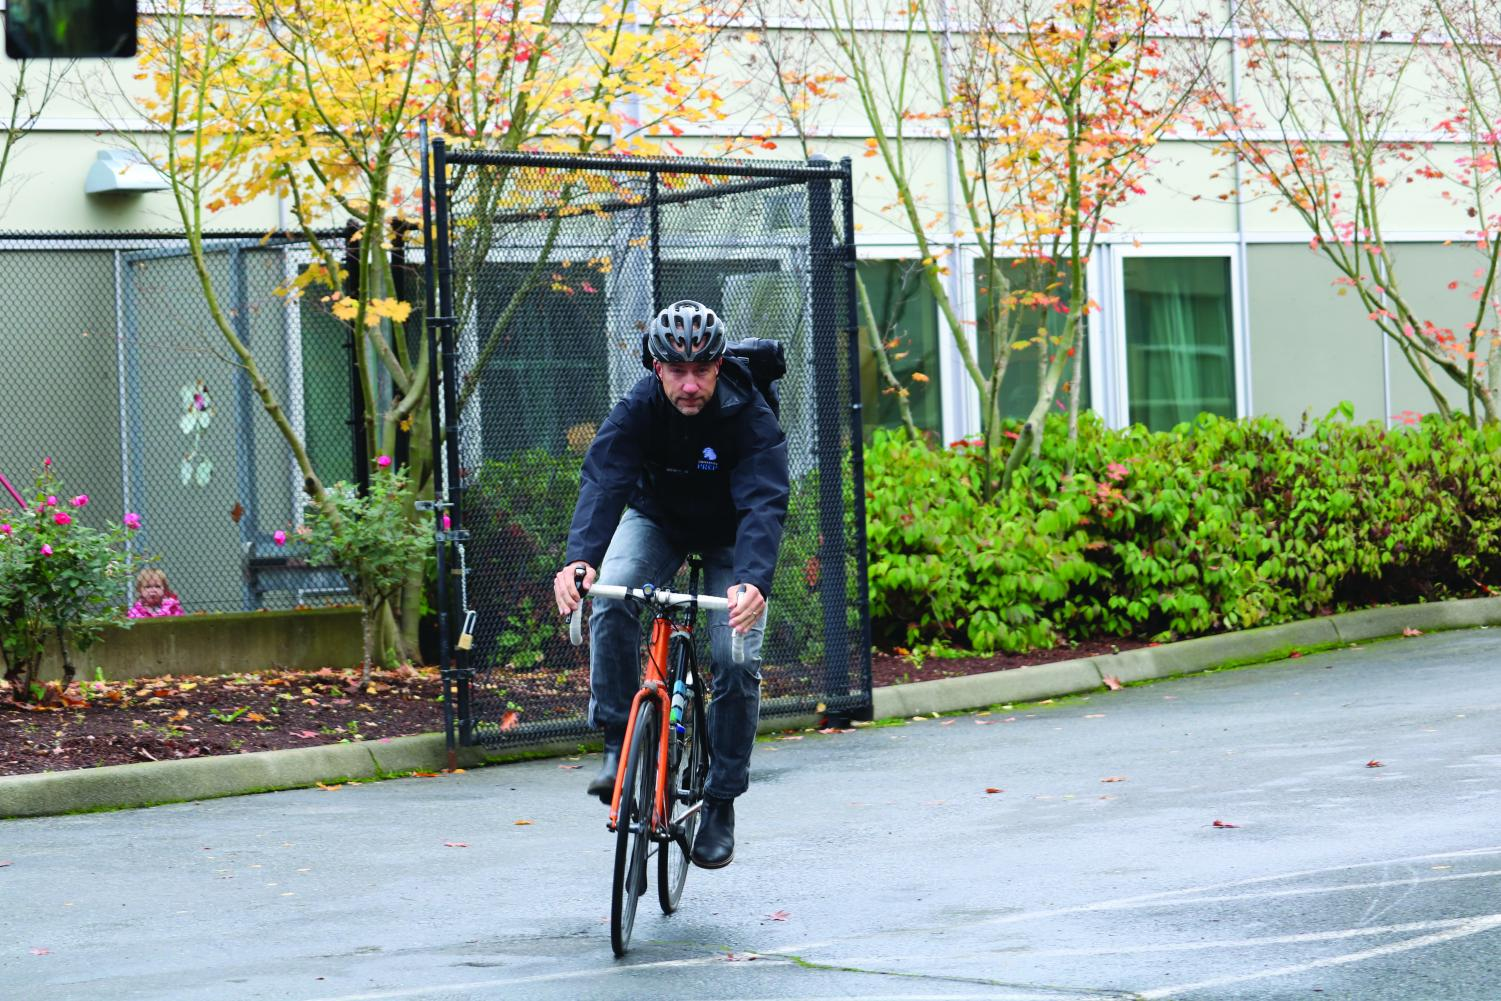 English teacher Alec Duxbury rides his bike. Duxbury rides his bike to school nearly every day -- he knows how important sustainable transportation is to the environment.